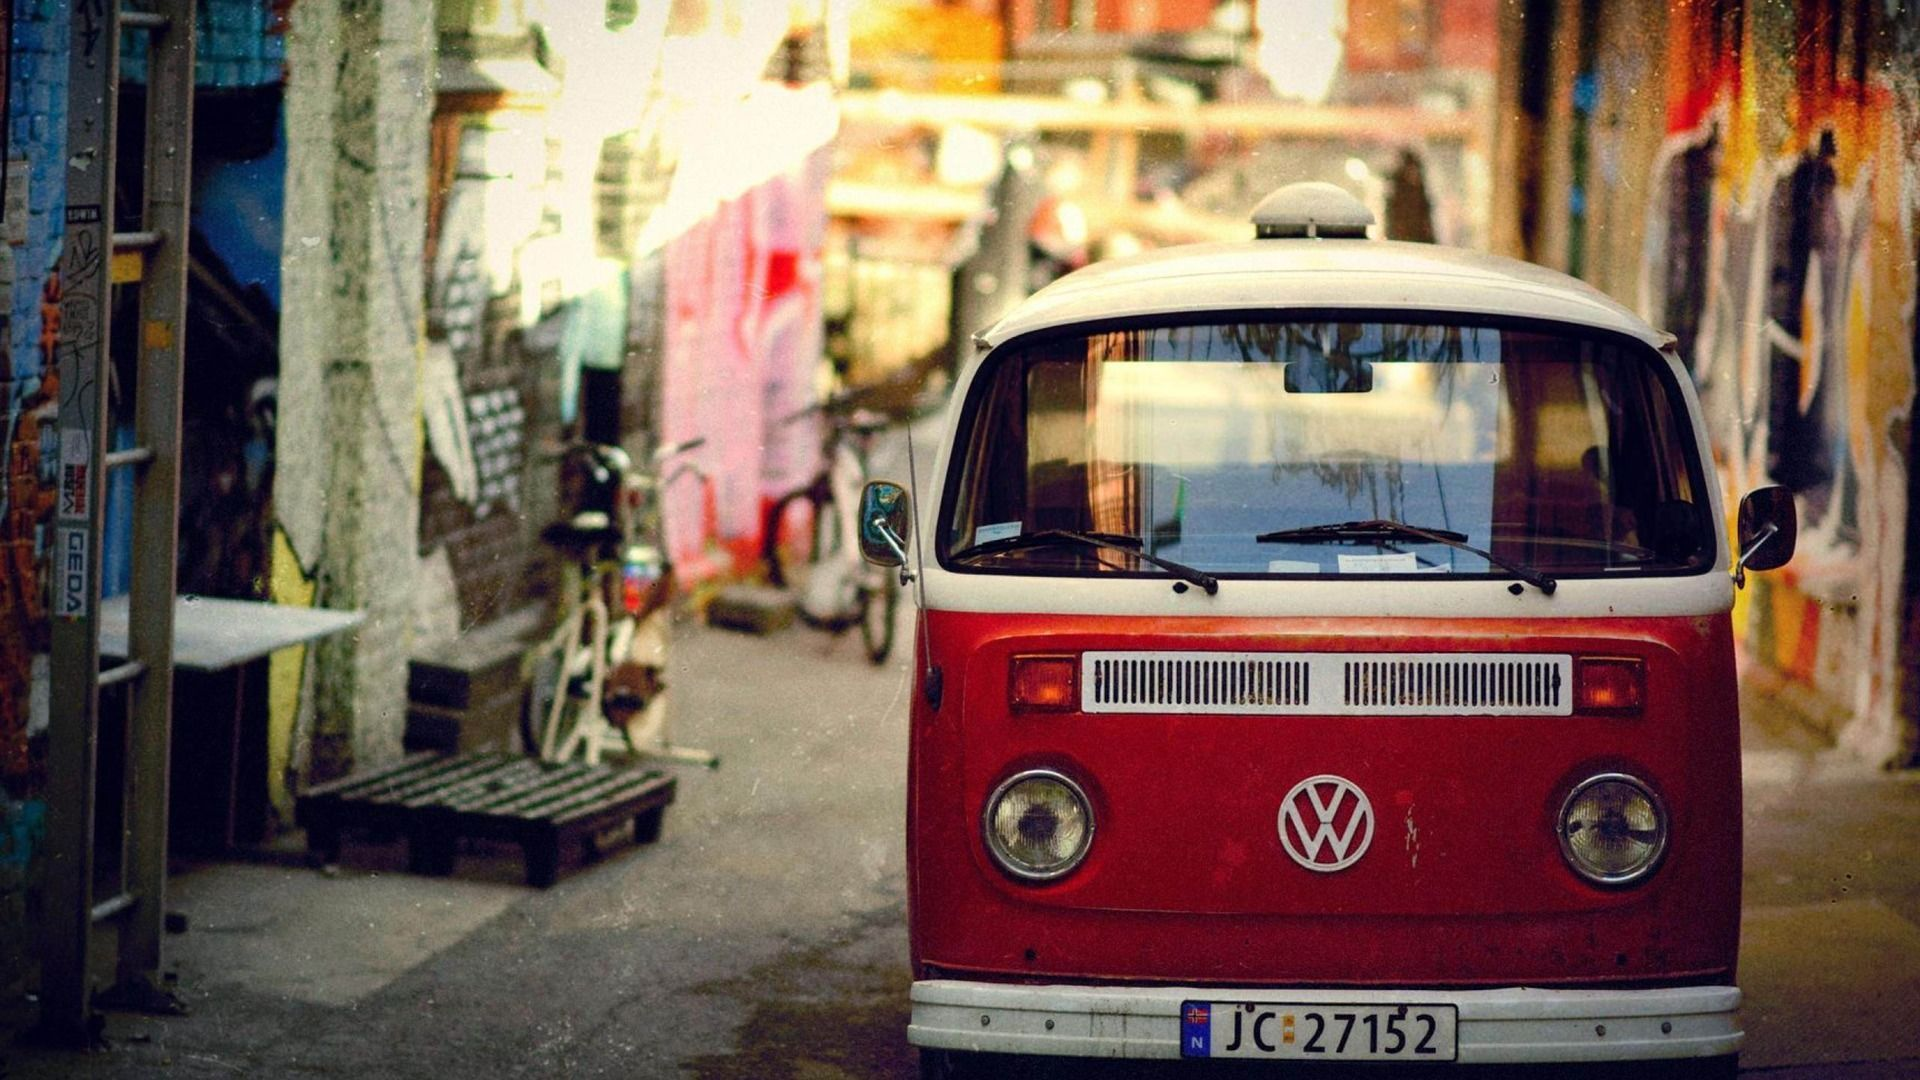 Volkswagen Bus Wallpaper